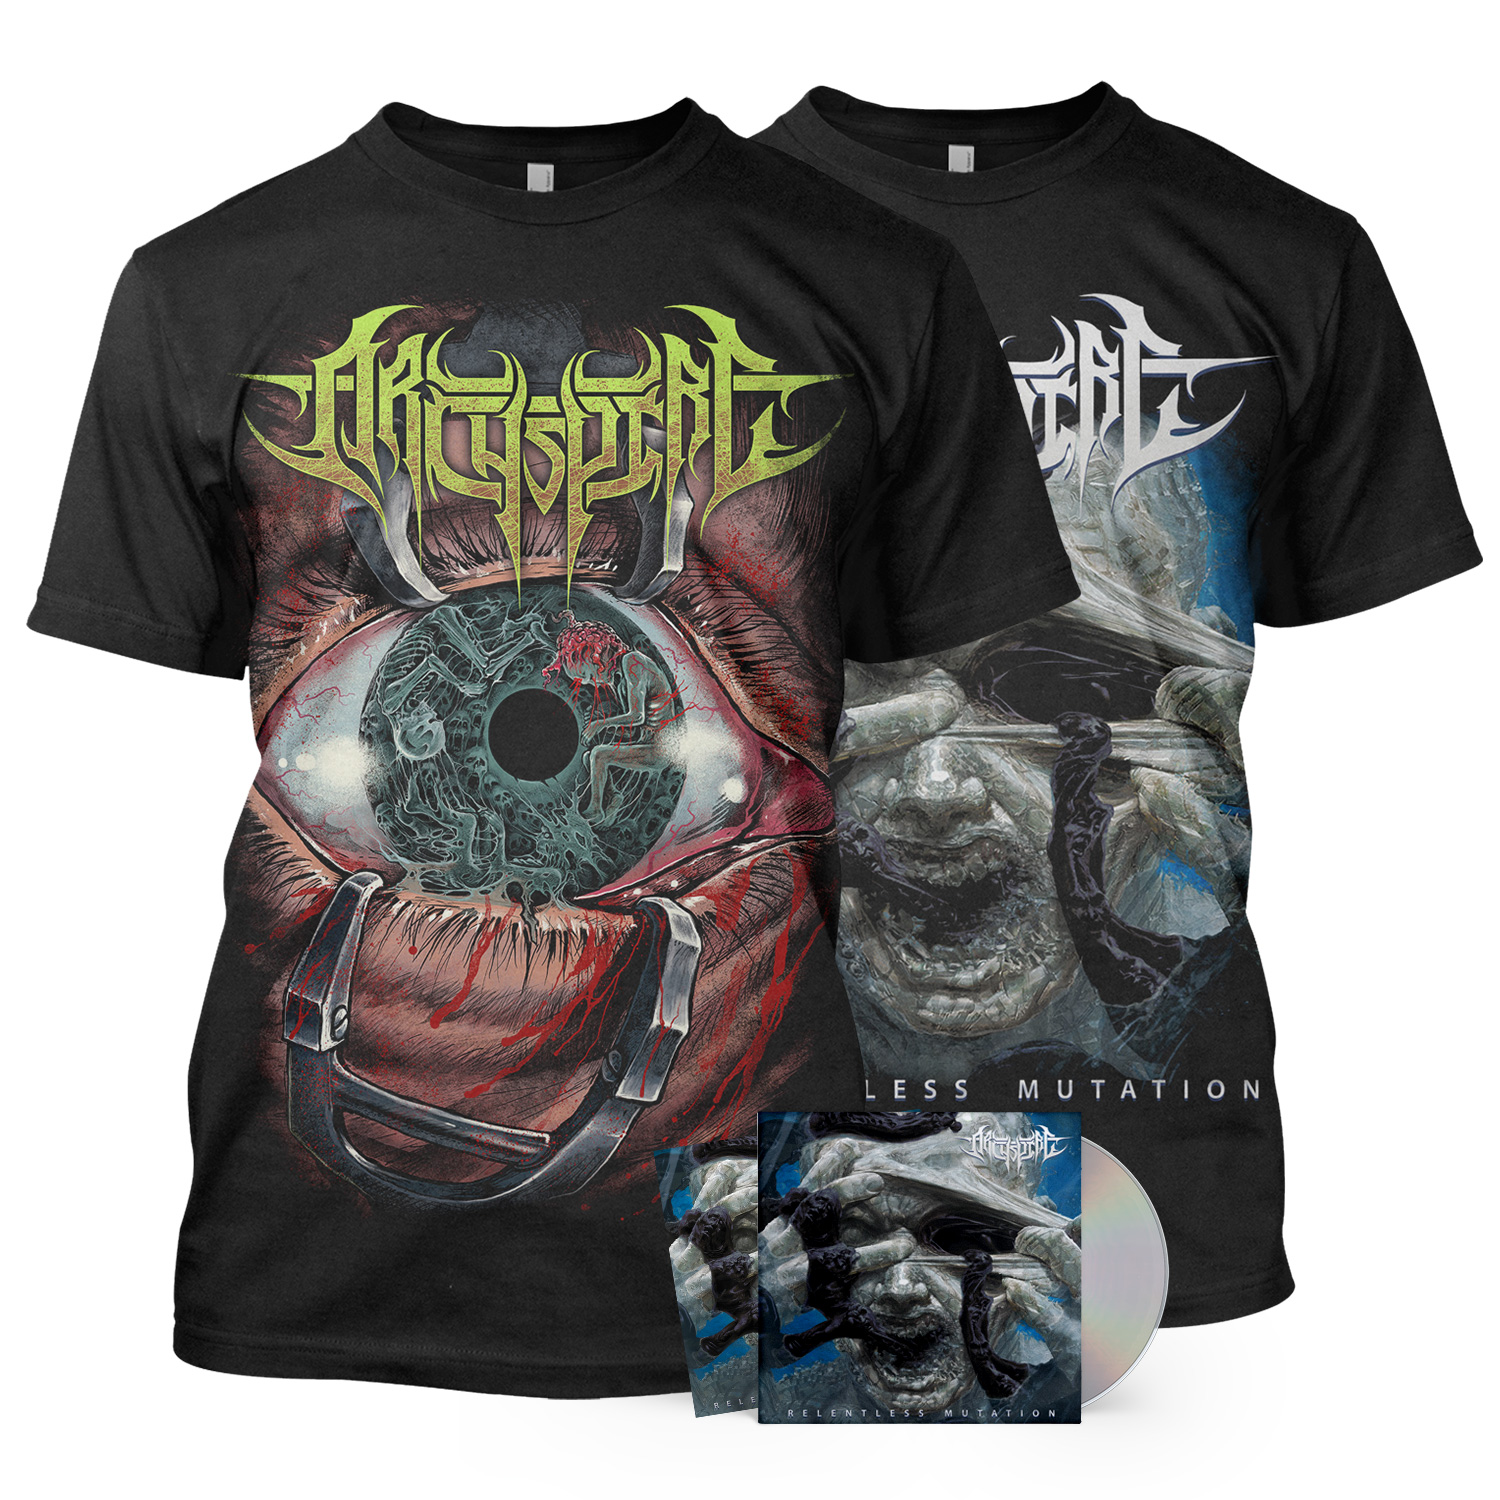 Two Tee/CD Bundle